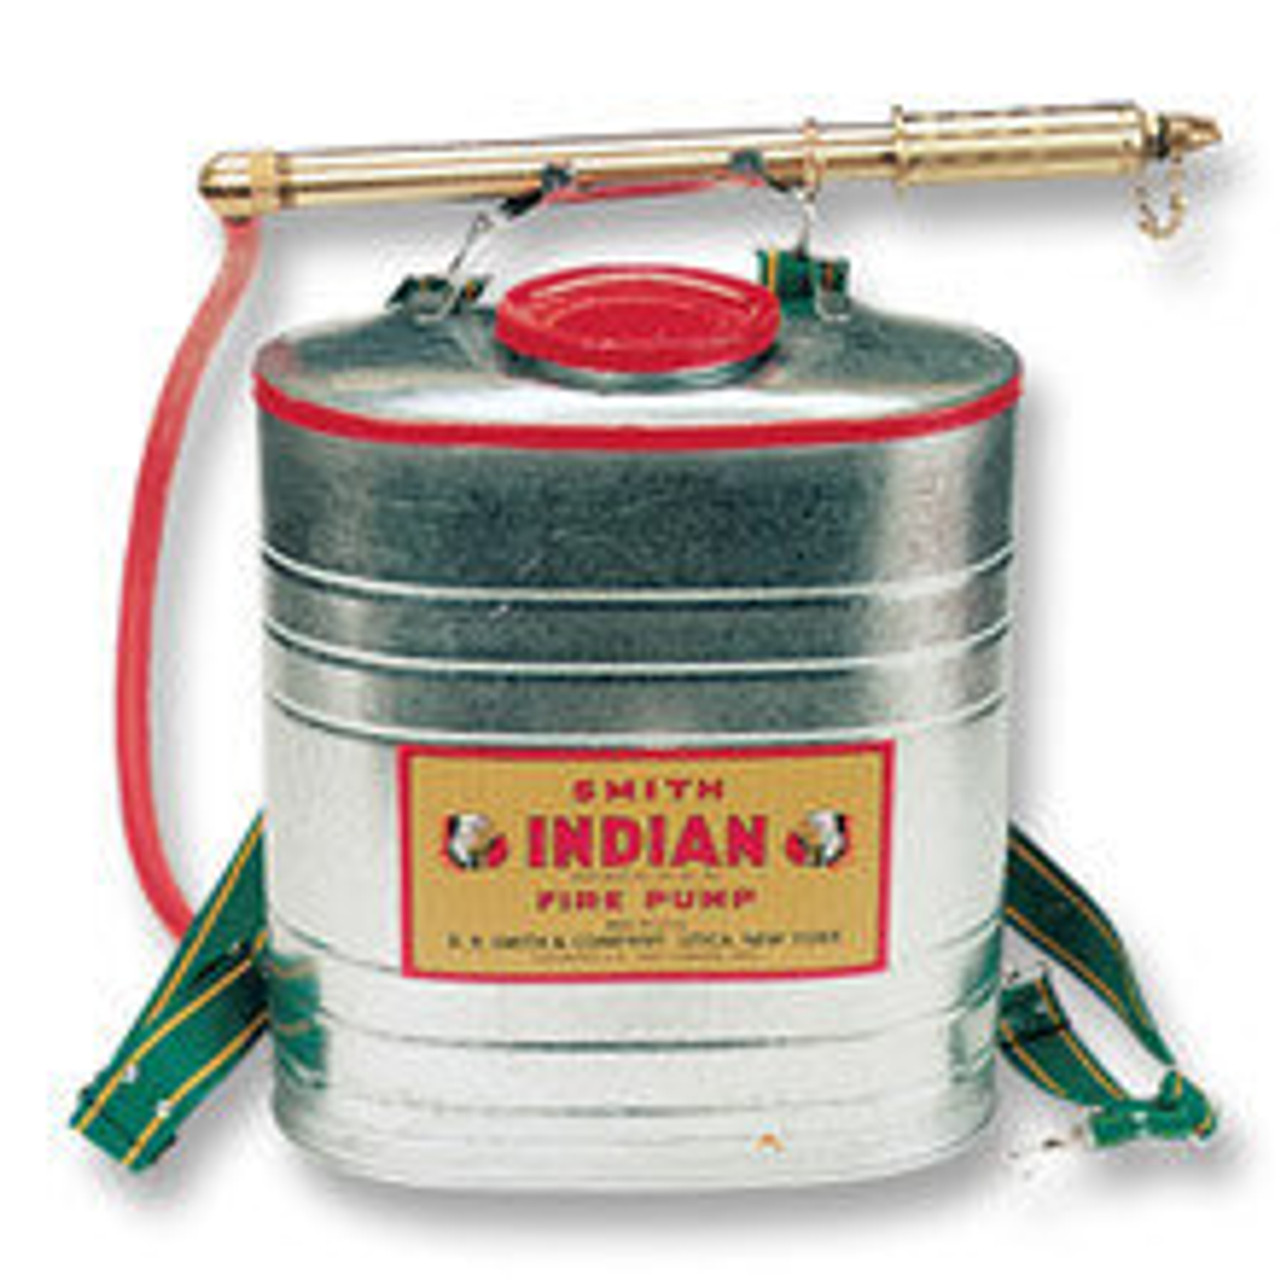 Indian Fire Pump 90G Galvanized Steel, 5 Gallon Tank